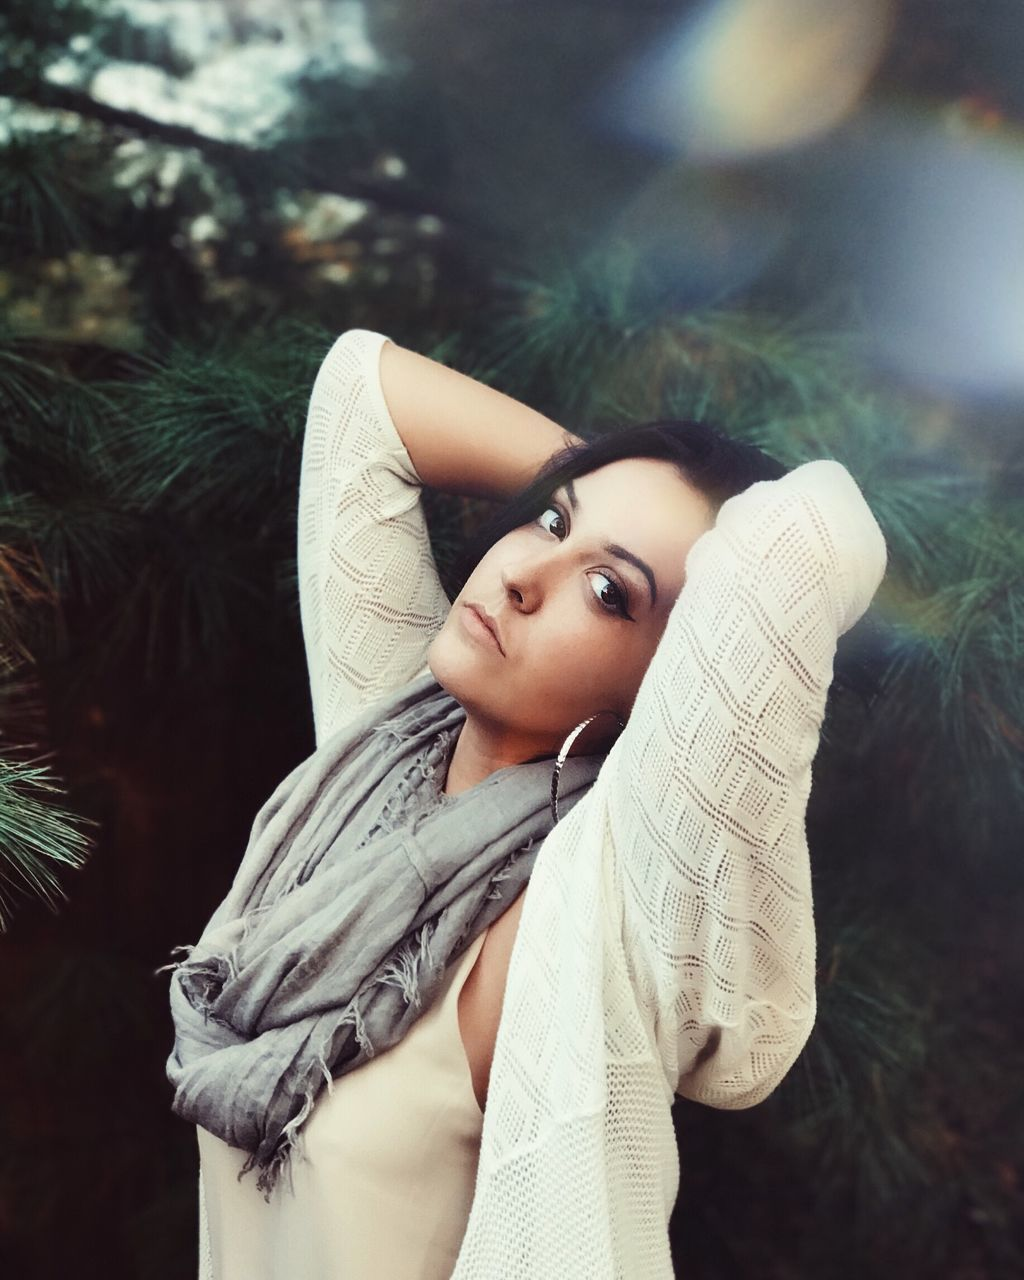 Portrait Of Young Woman With Hands Behind Head Against Tree